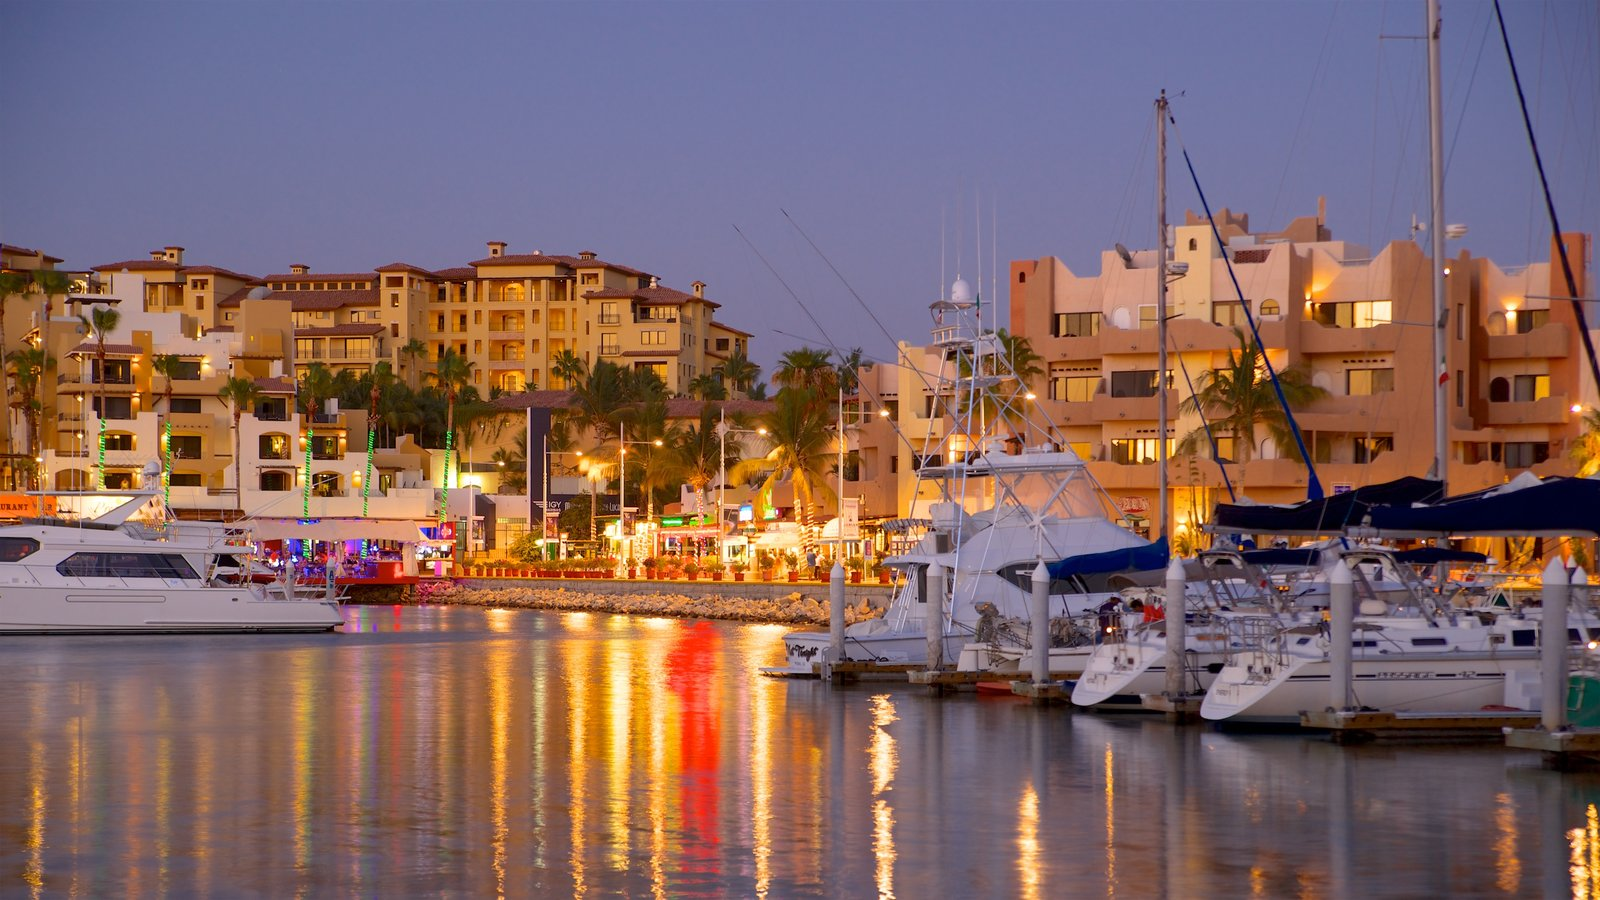 Mexico which includes a bay or harbor, a coastal town and night scenes